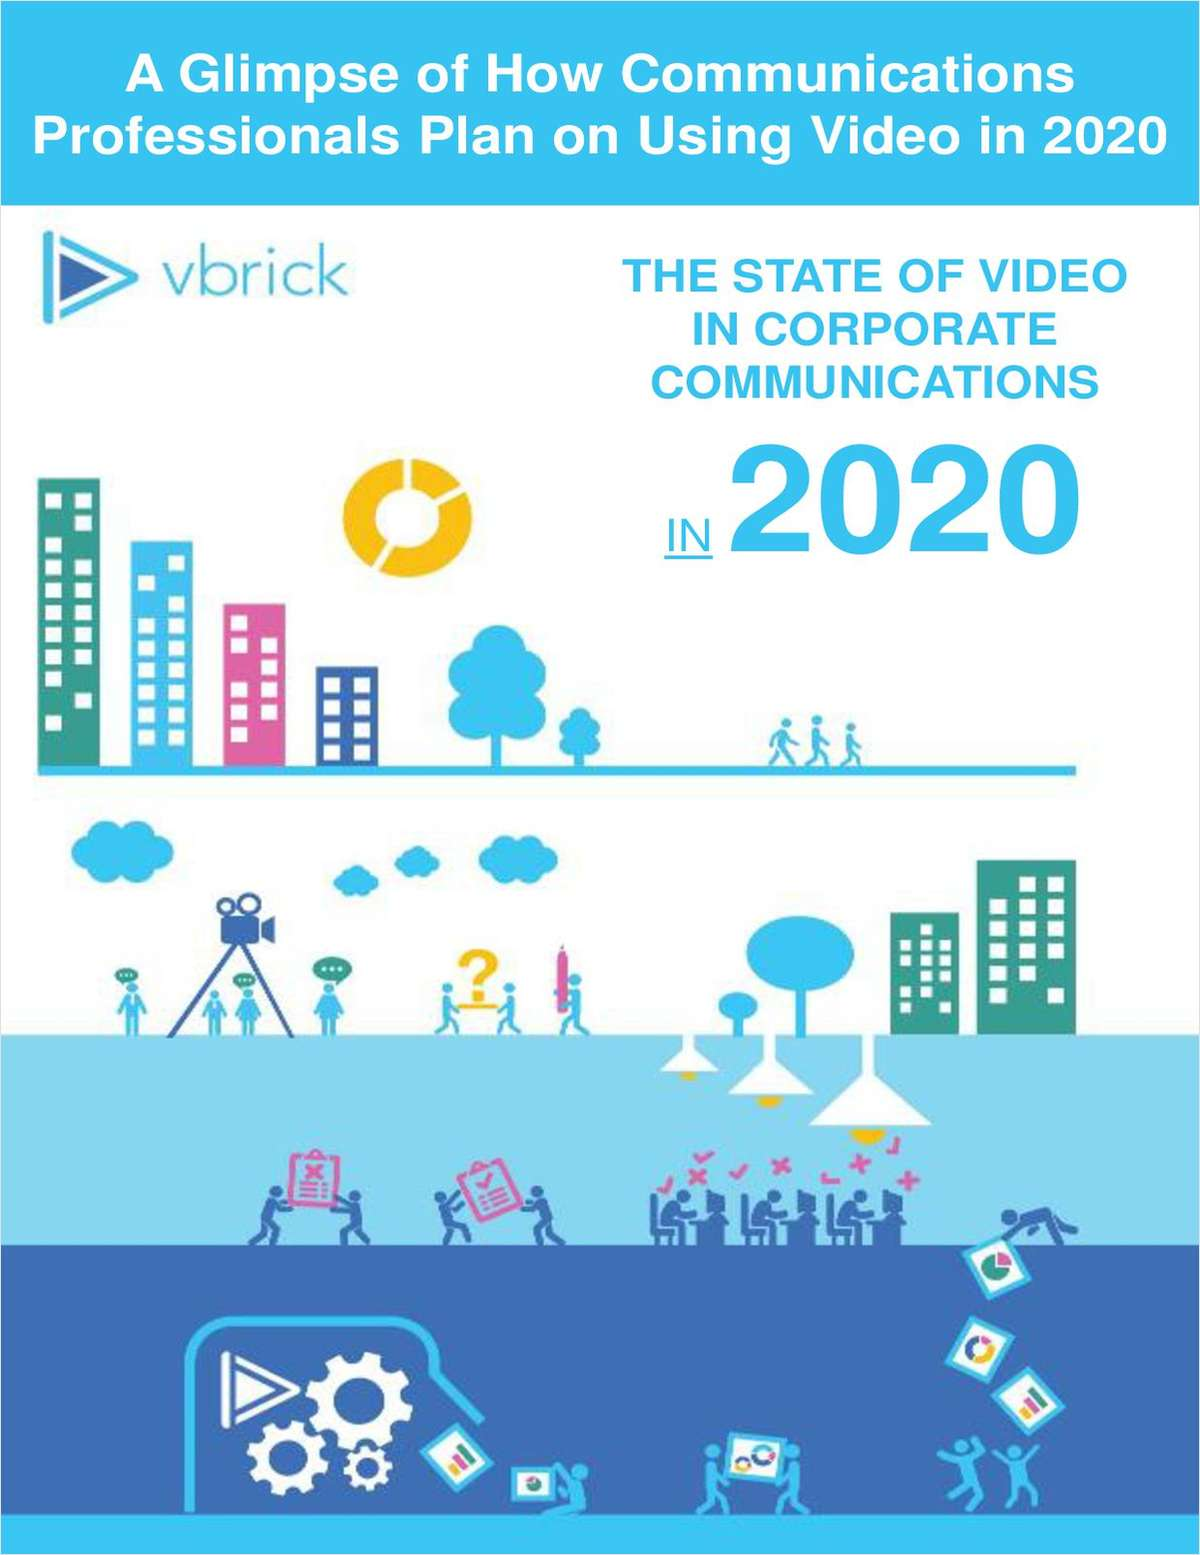 THE STATE OF VIDEO IN CORPORATE COMMUNICATIONS IN 2020